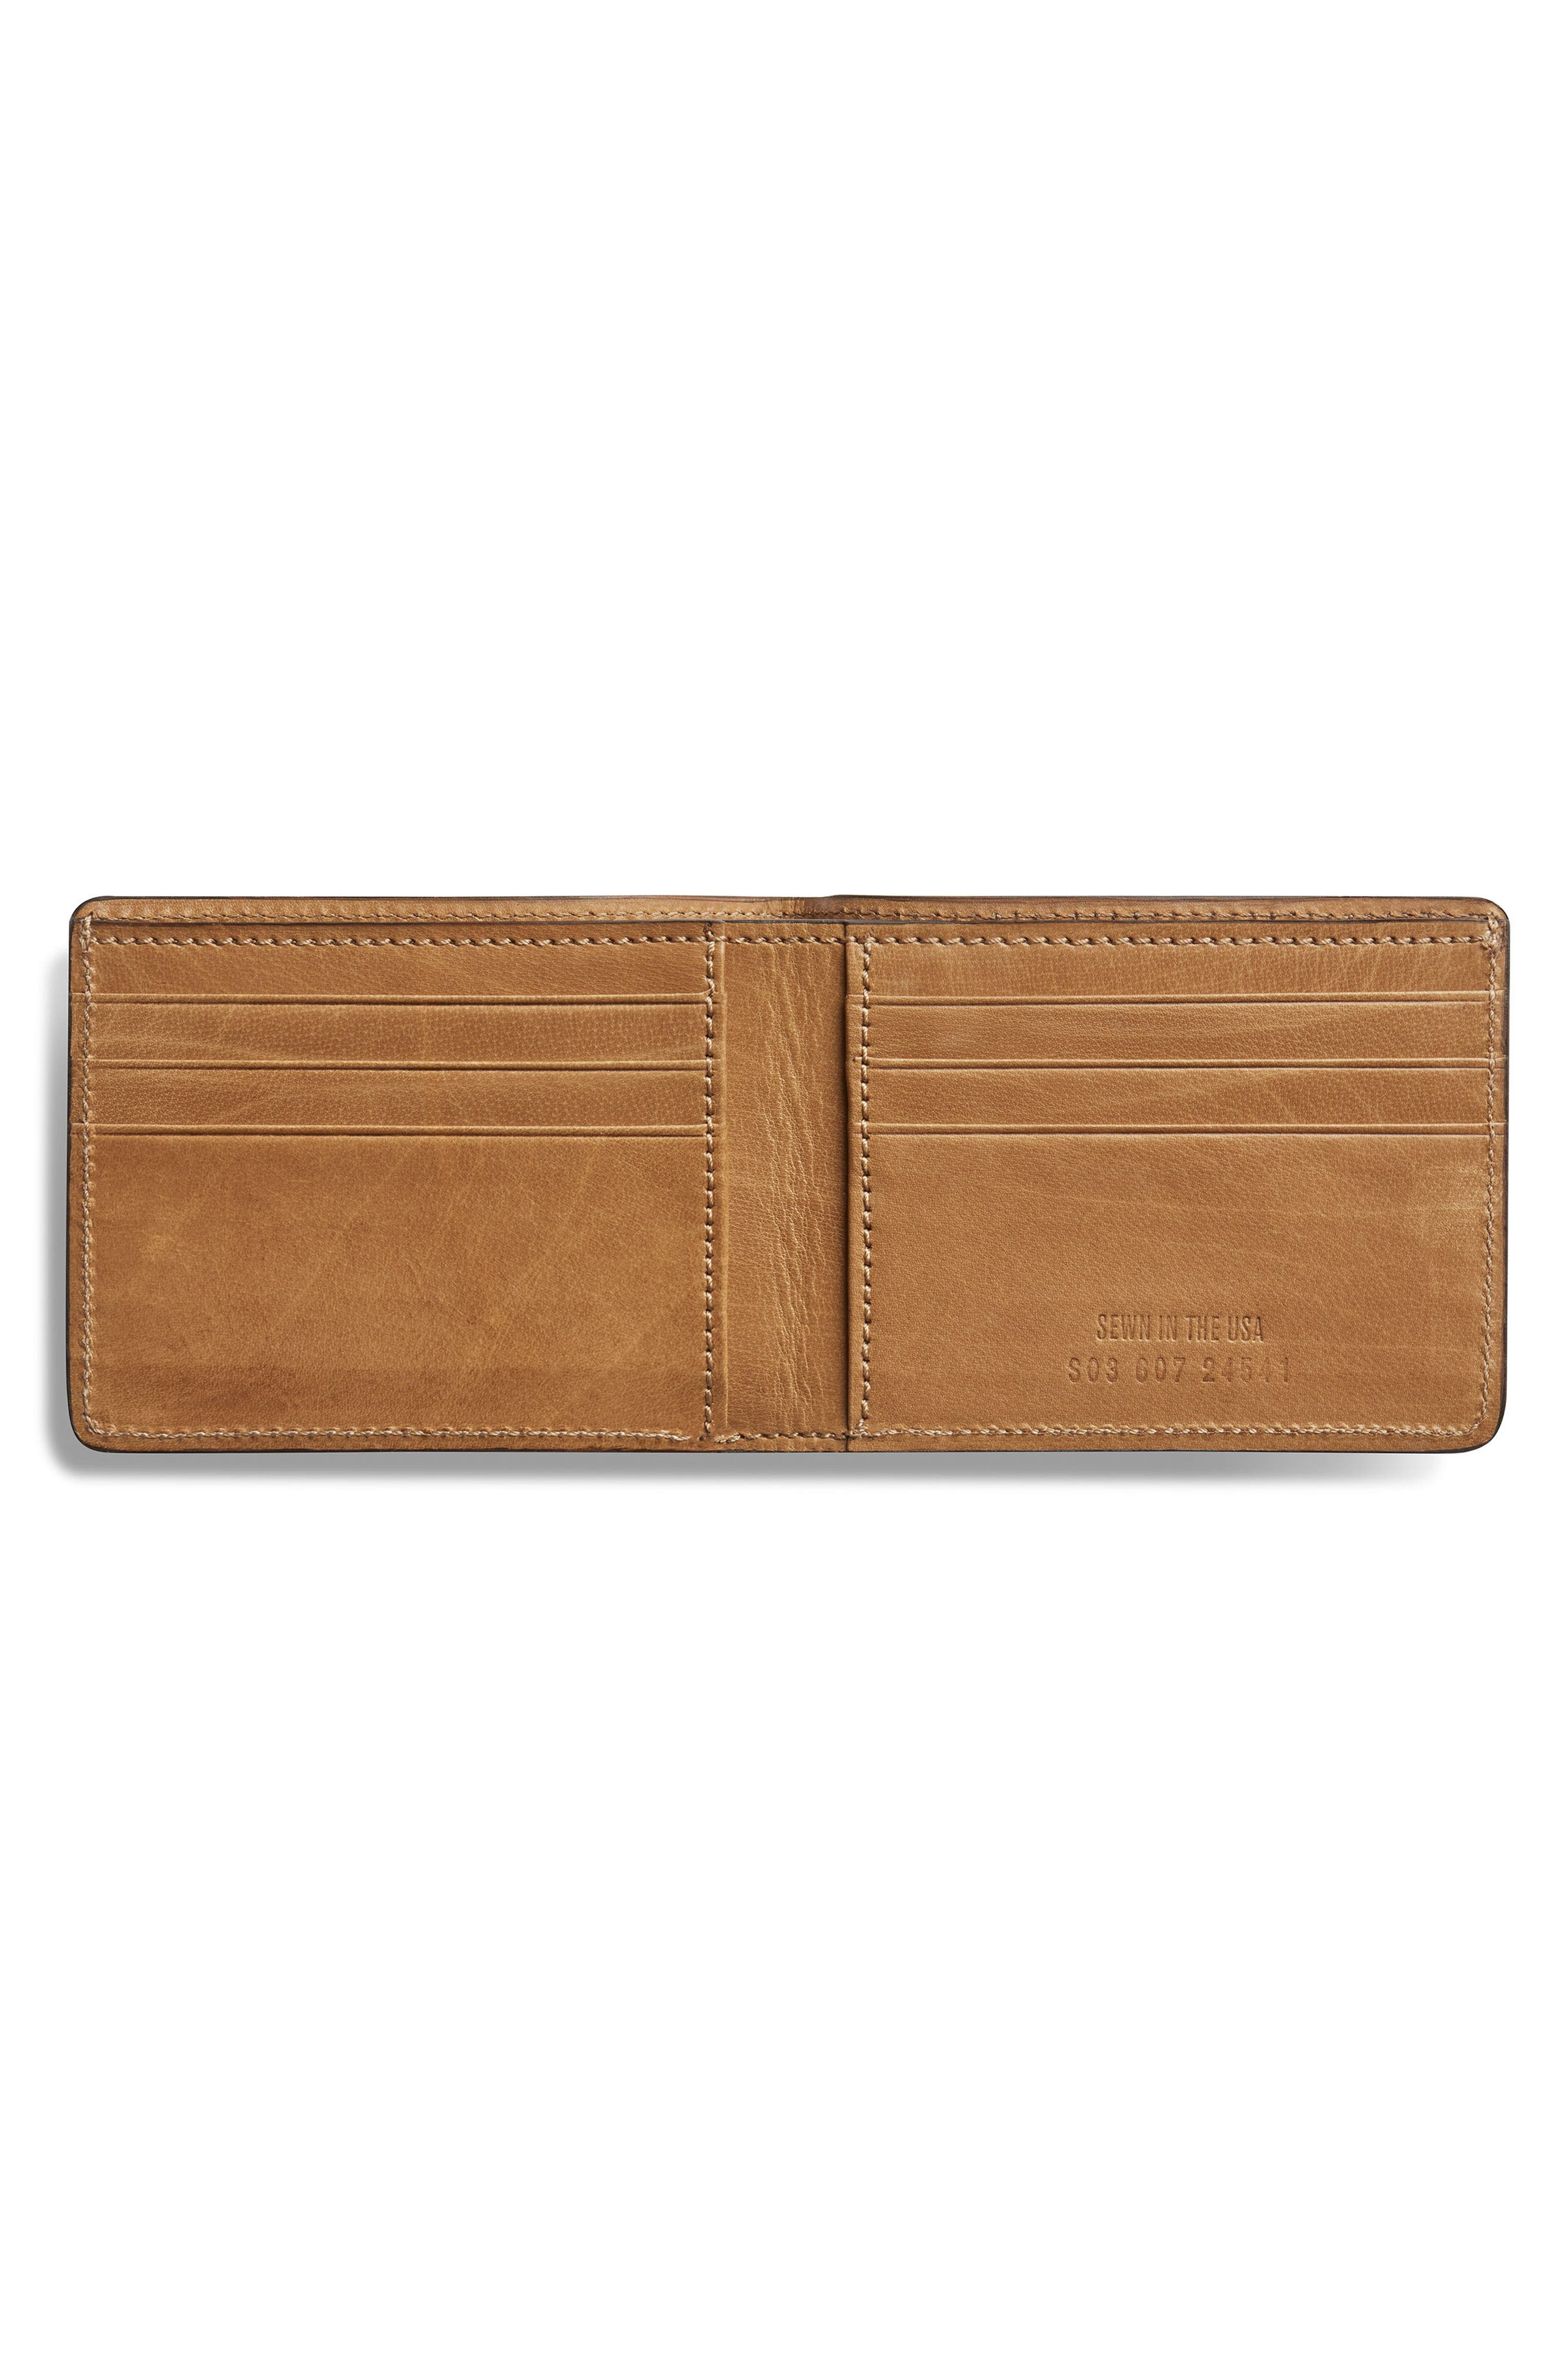 Outlaw Wallet,                             Alternate thumbnail 2, color,                             Sand